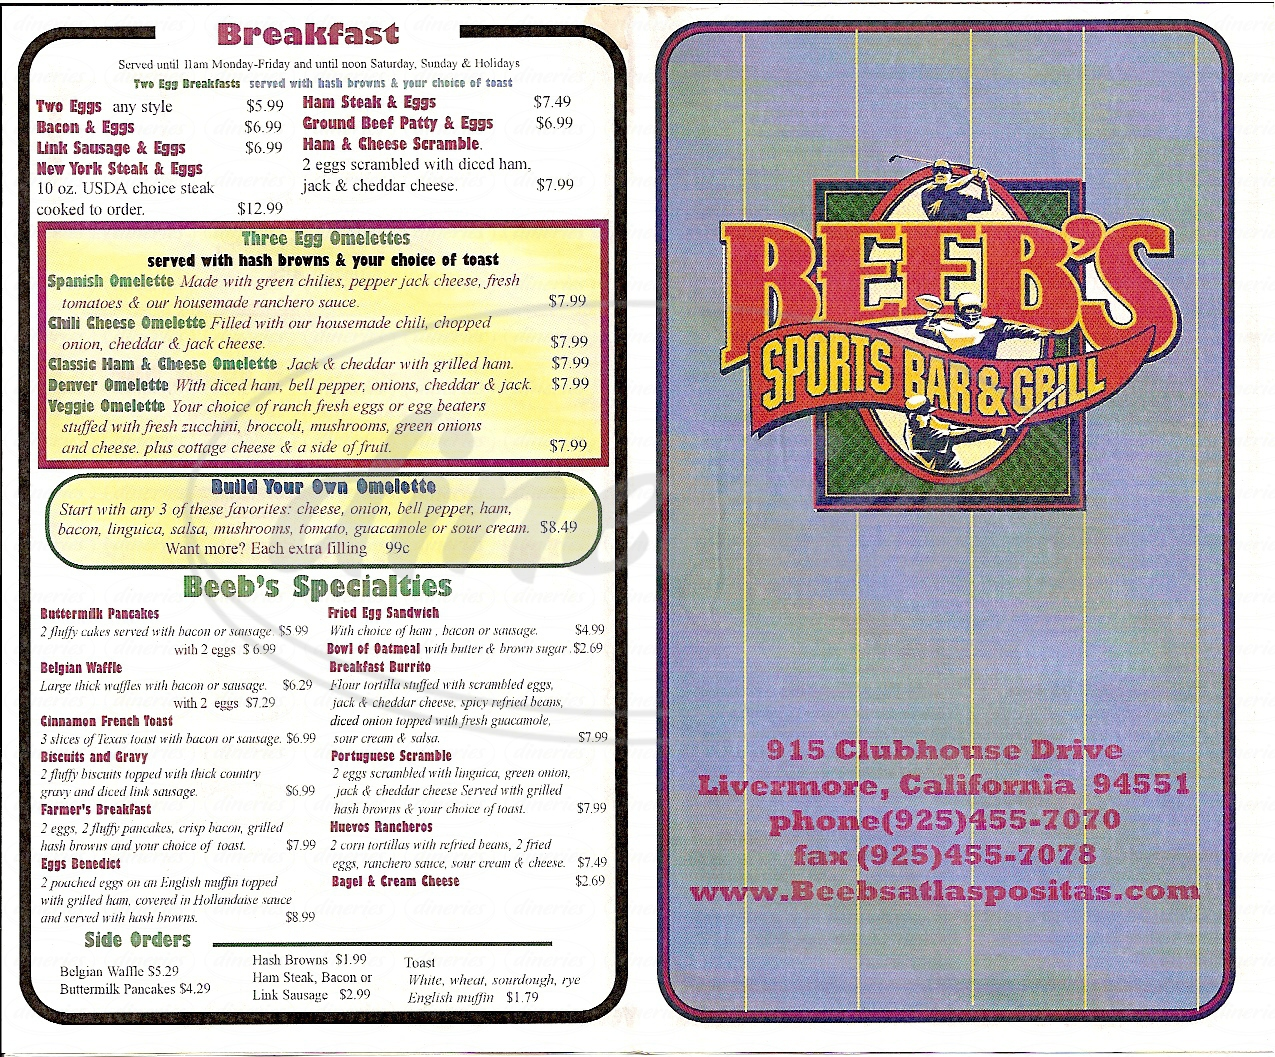 menu for Beeb's Sports Bar & Grill